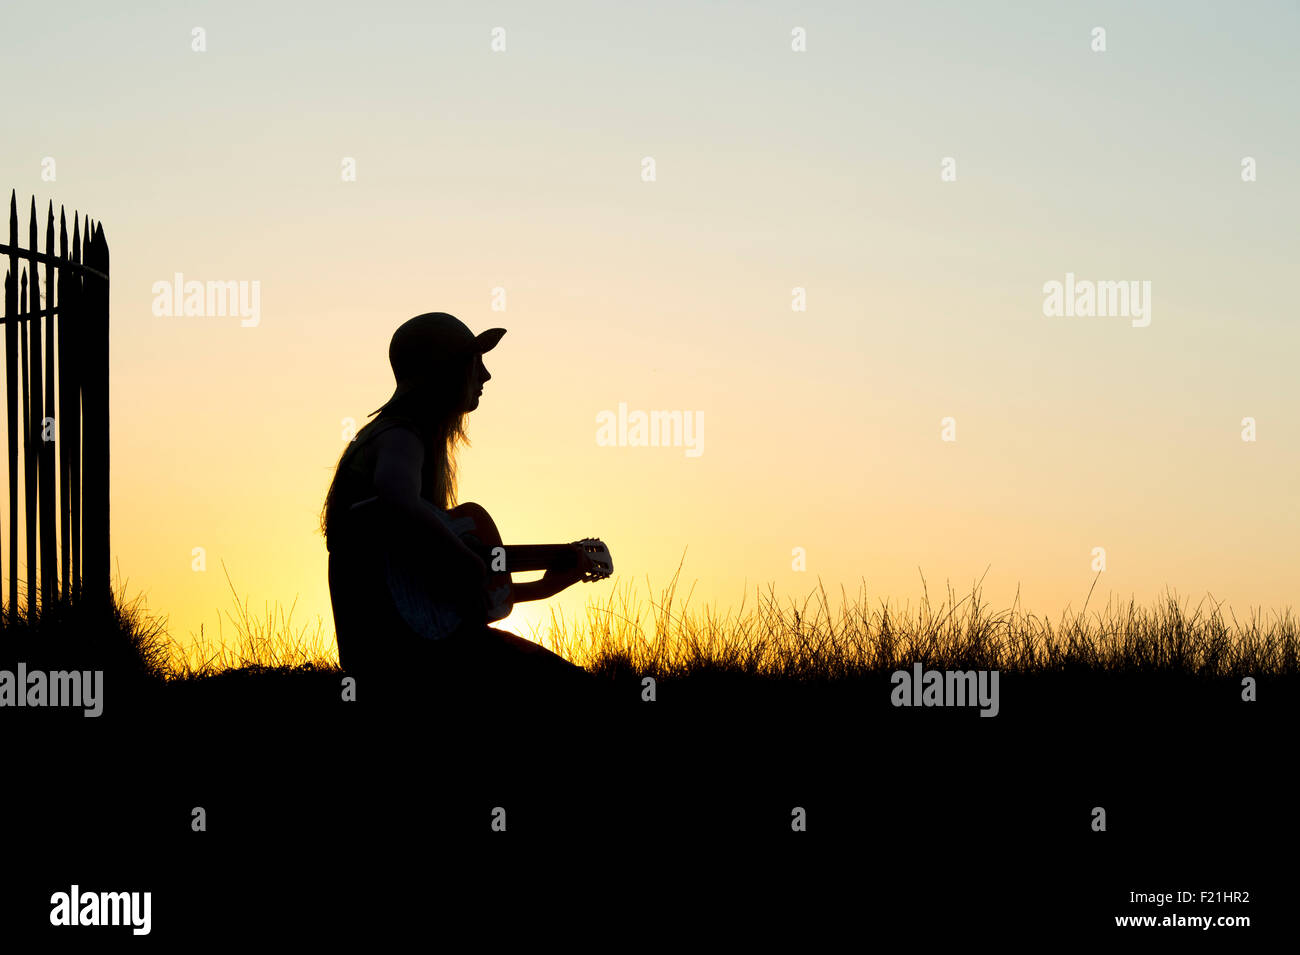 Teenage girl sat playing a guitar at sunset. Silhouette - Stock Image